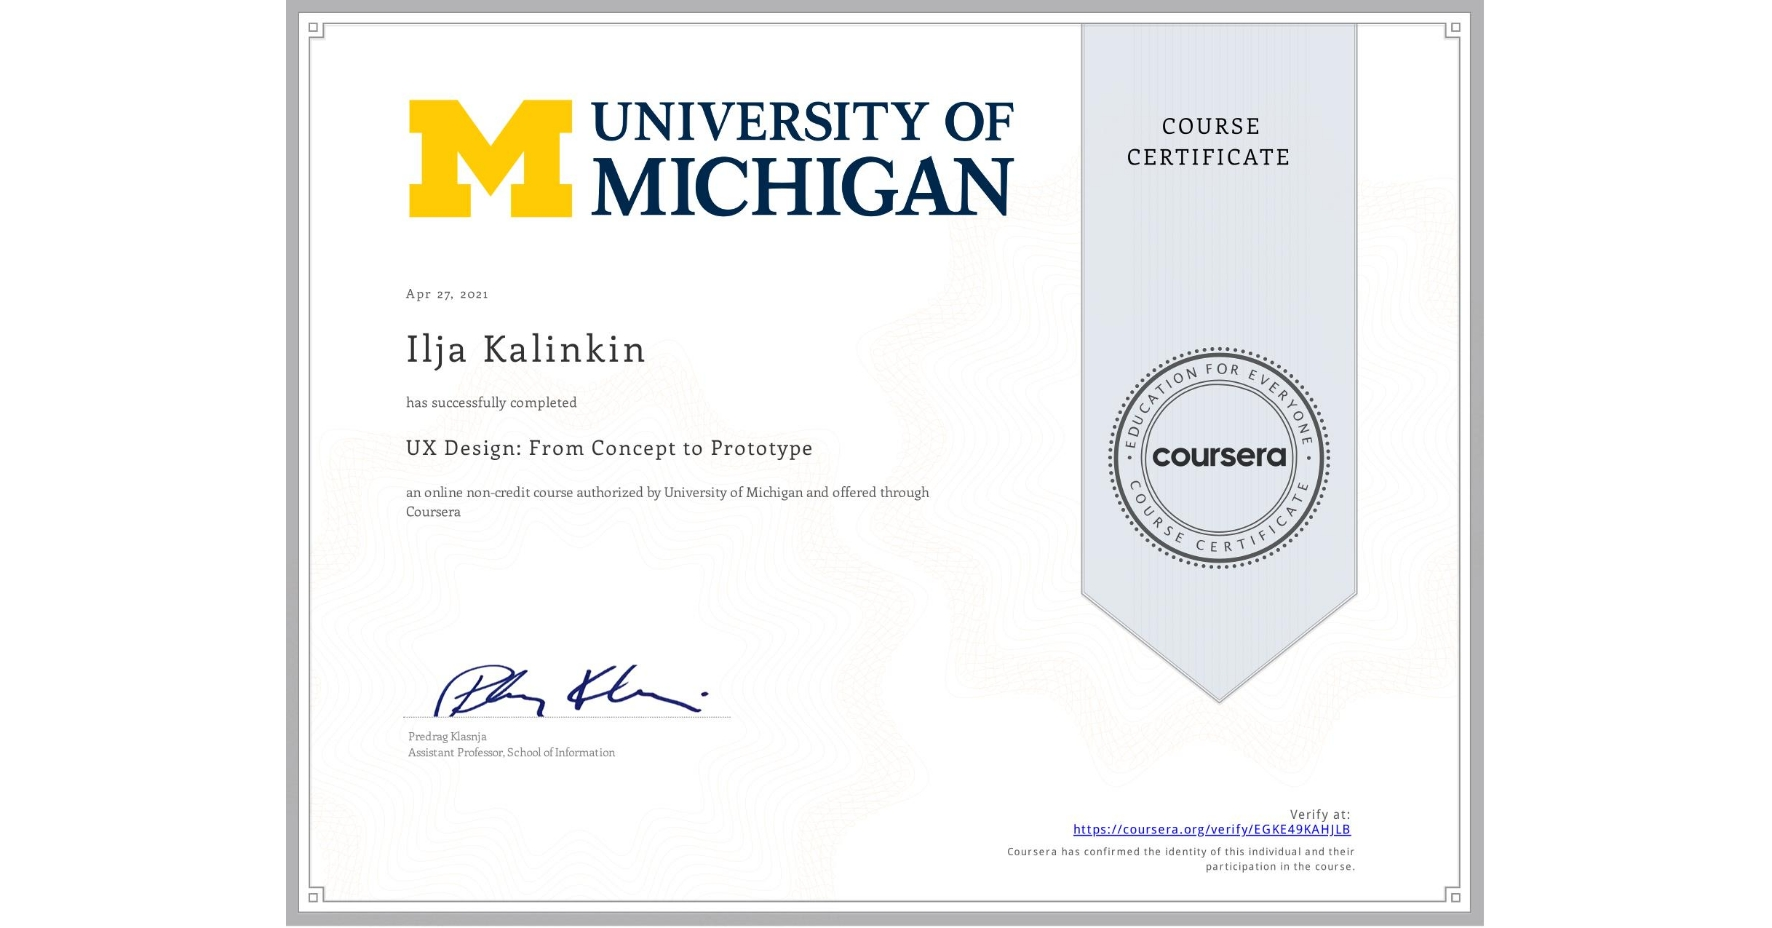 View certificate for Ilja Kalinkin, UX Design: From Concept to Prototype, an online non-credit course authorized by University of Michigan and offered through Coursera